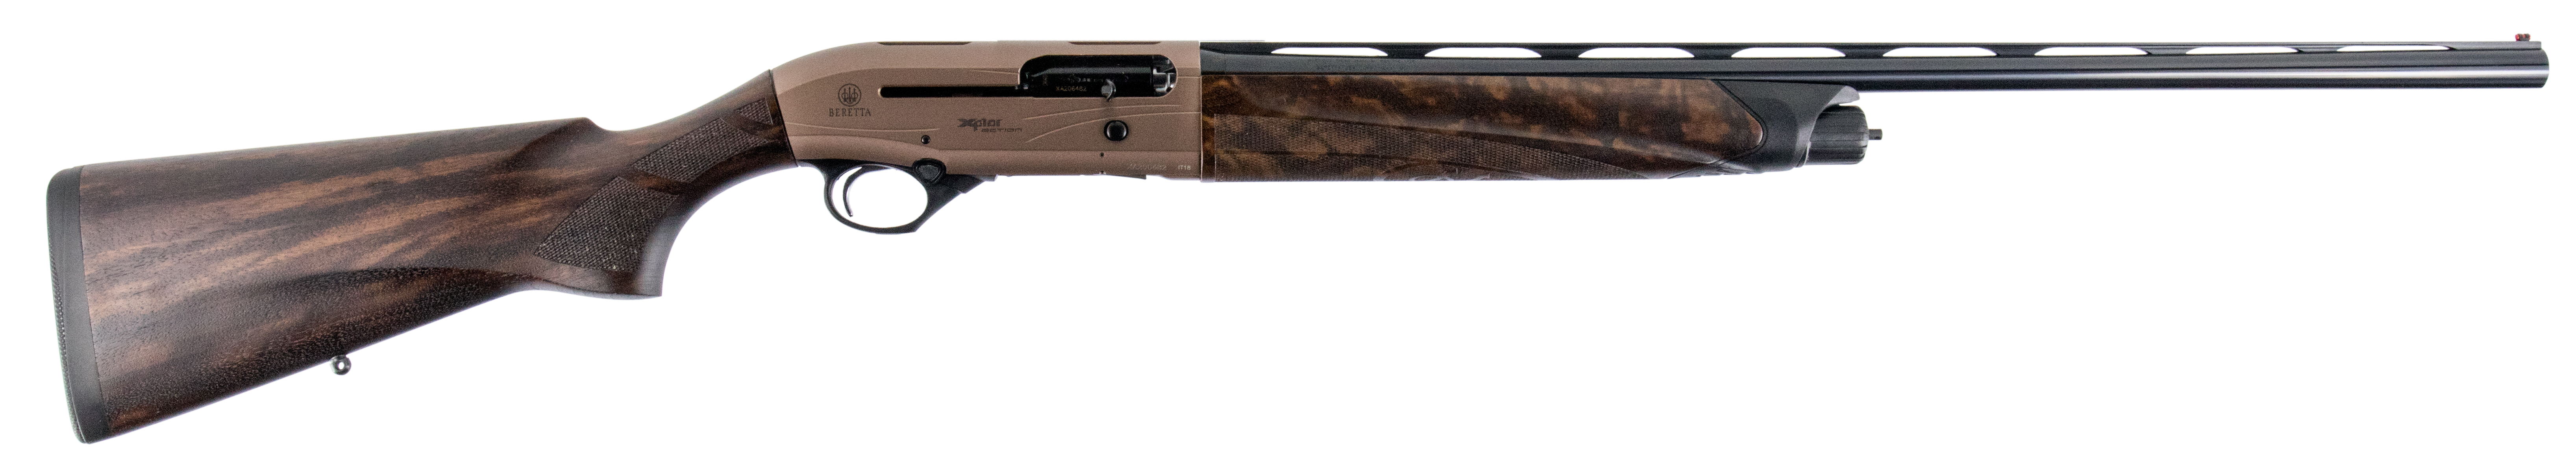 Beretta A400 Xplor Action Semi-Auto Shotgun 3'' 12 Gauge 28'' Bronze Toned Aluminum Alloy - Walnut